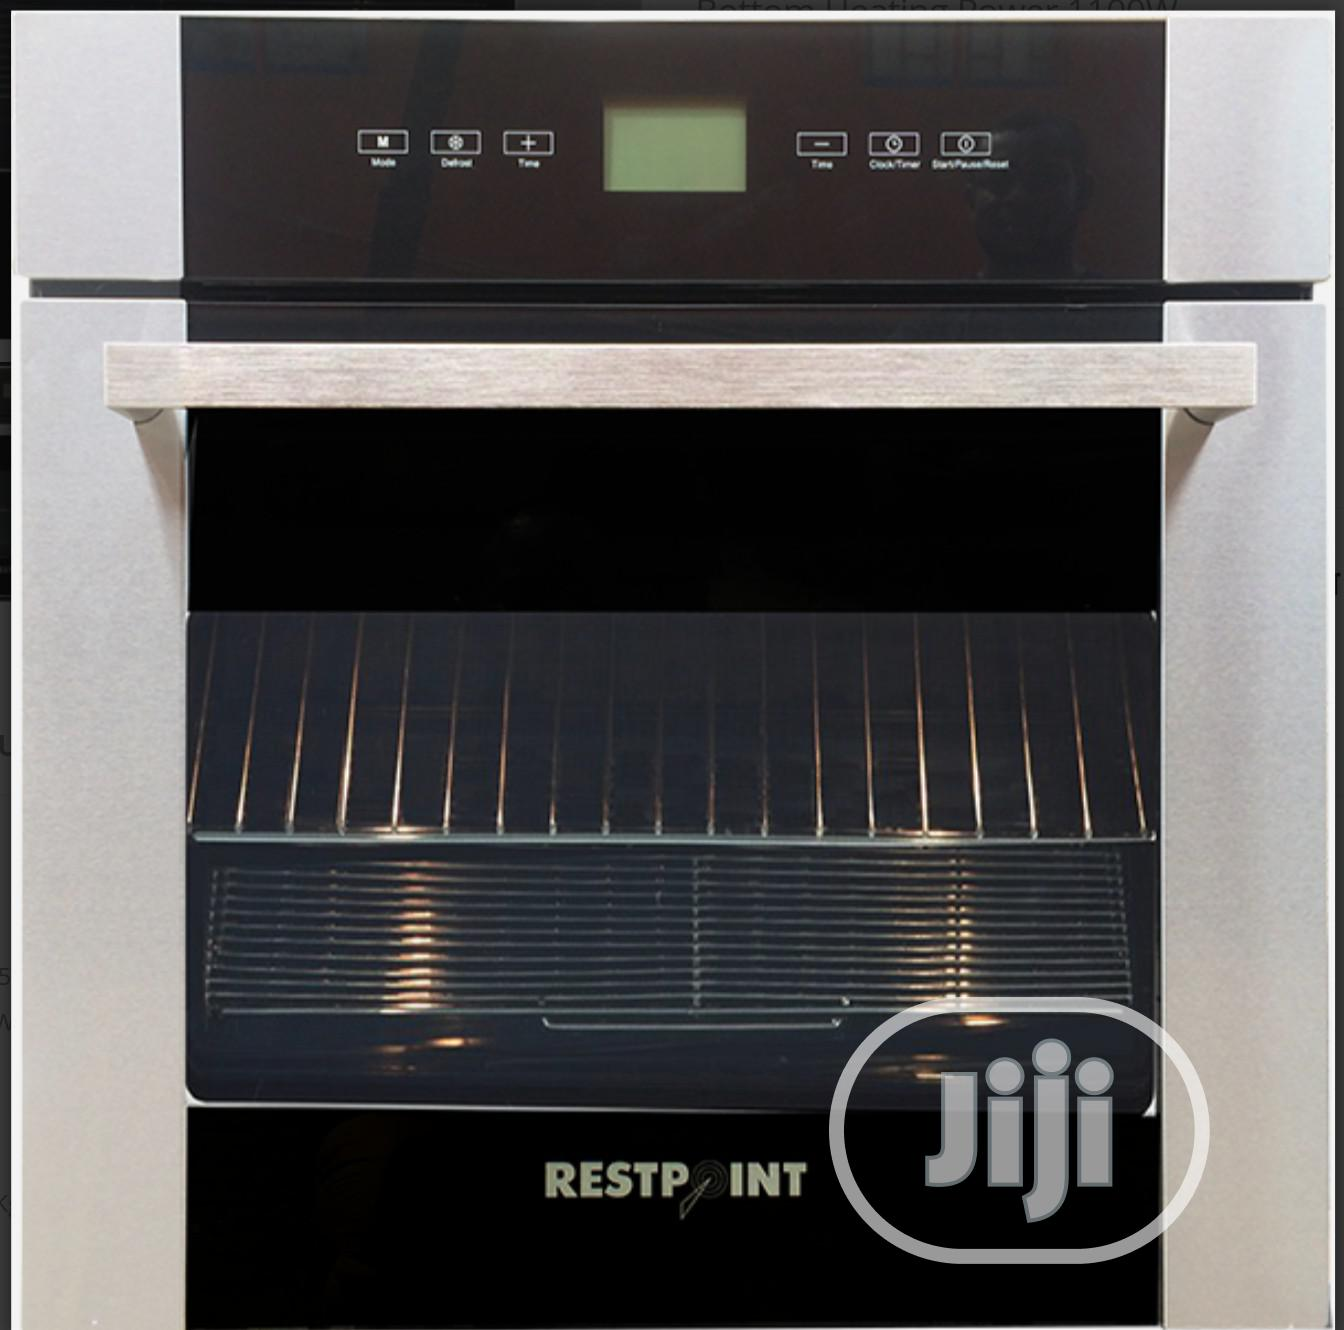 Restpoint Electric Oven Model: Mc60vs | Kitchen Appliances for sale in Ojo, Lagos State, Nigeria